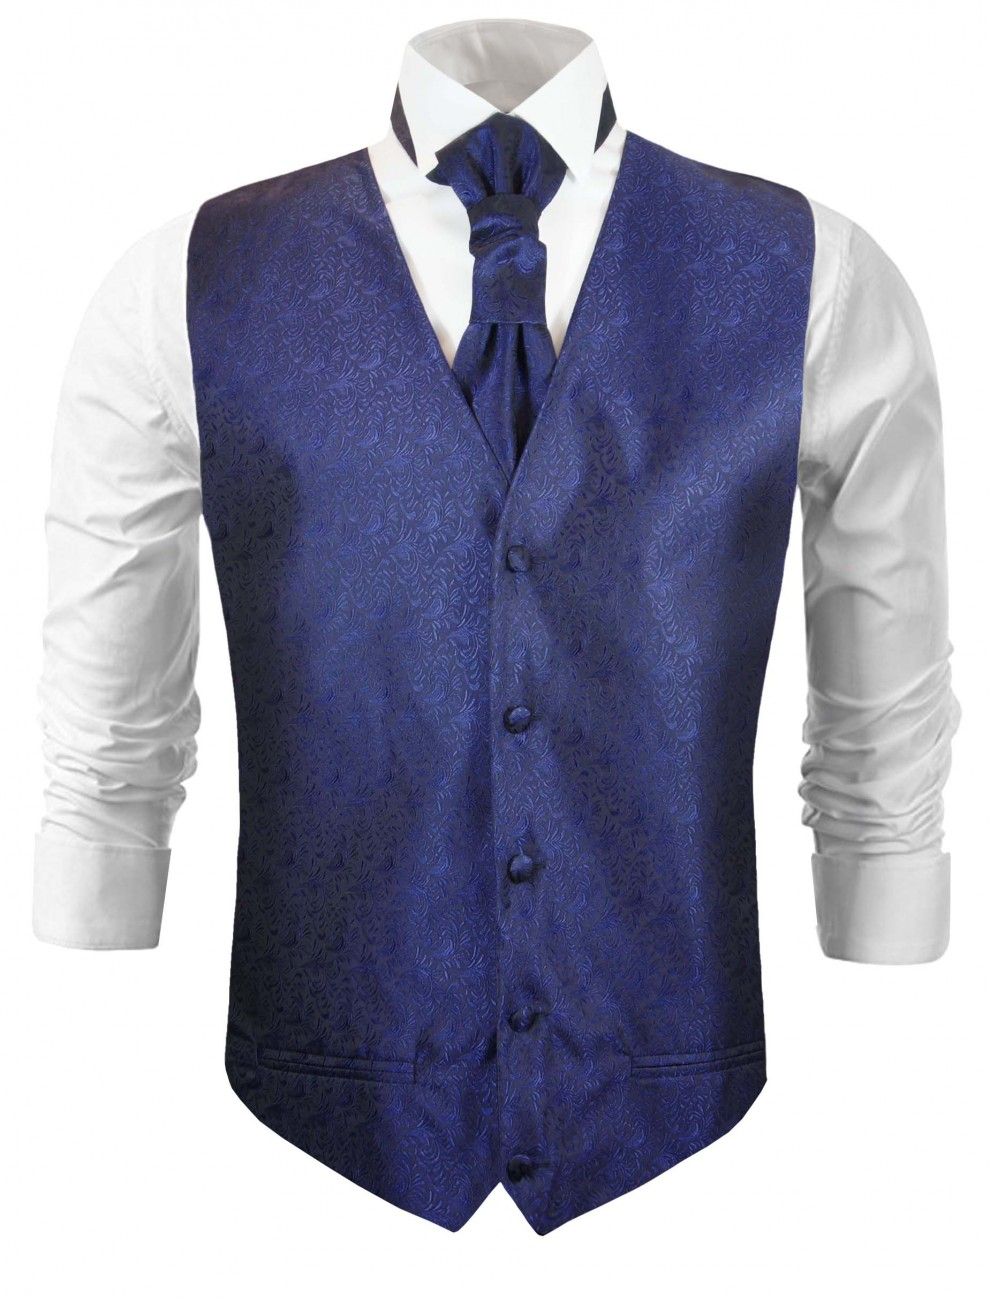 Blue wedding vest waistcoat with cravat